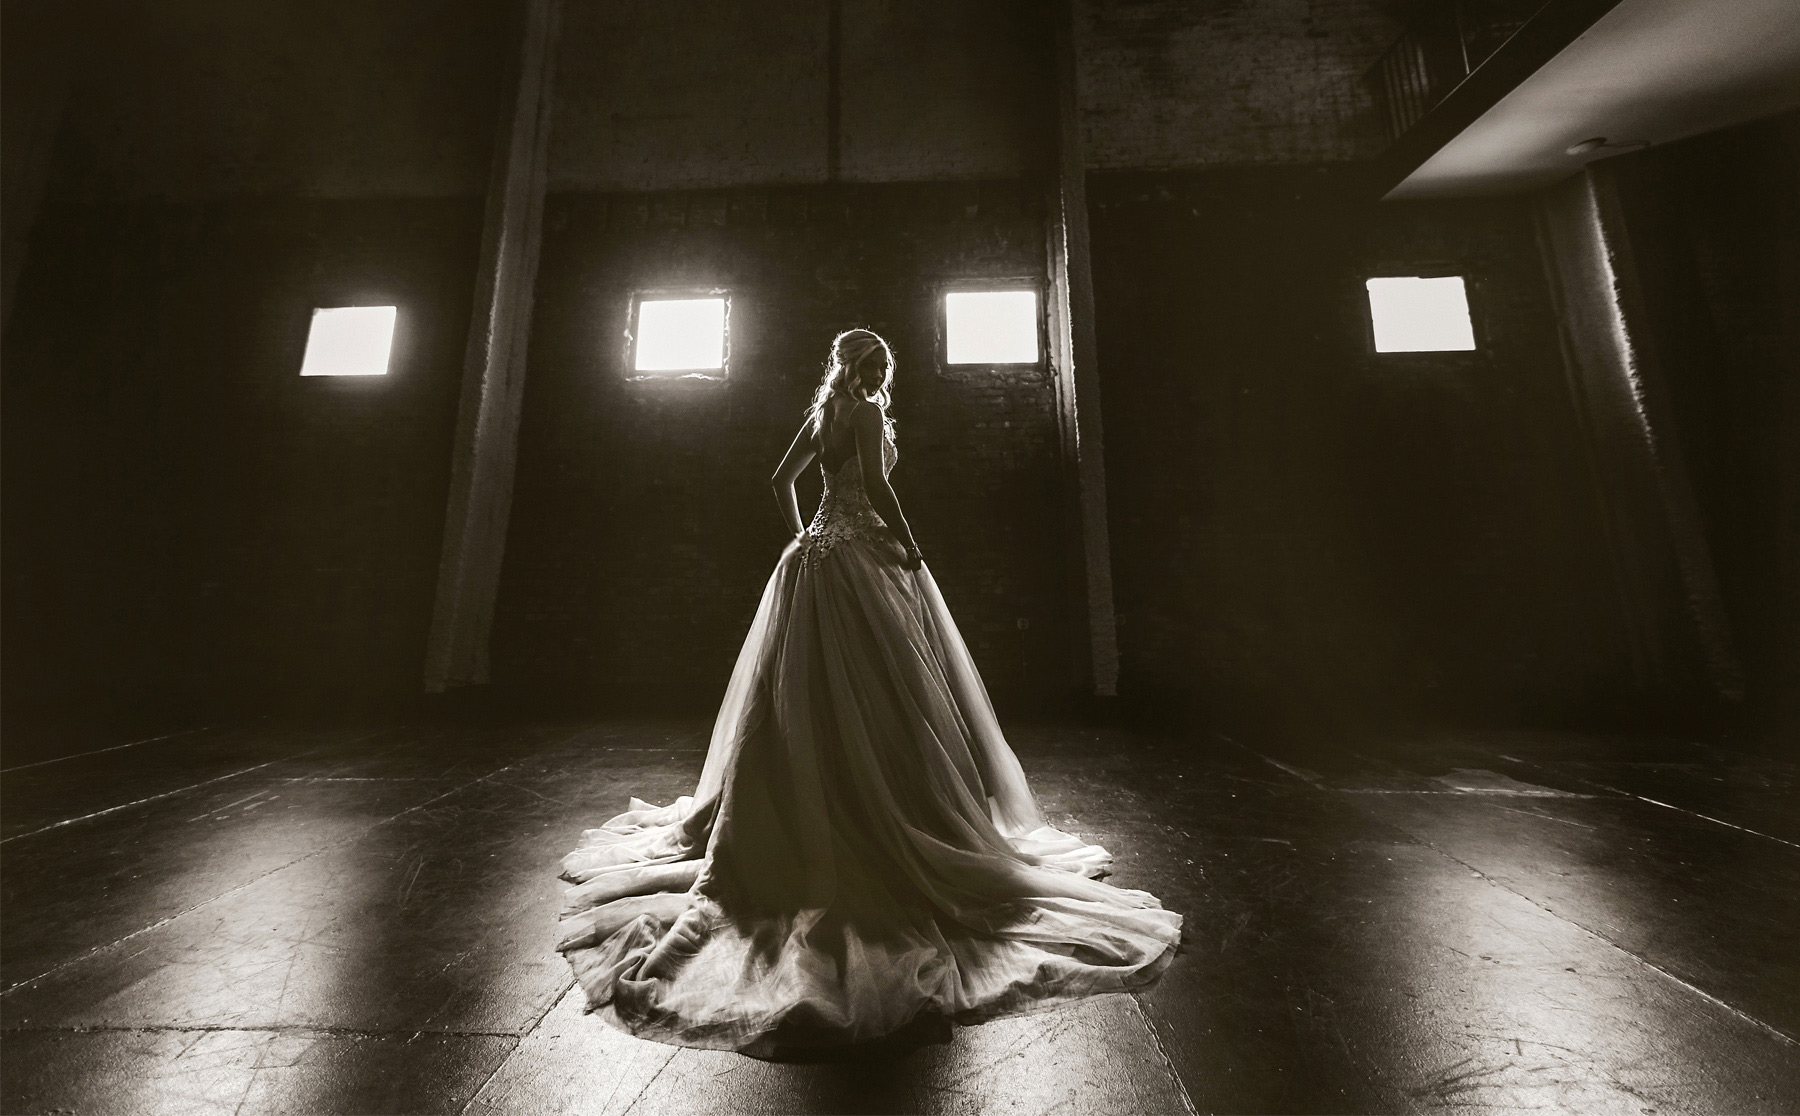 03-Minneapolis-Minnesota-Wedding-Photography-by-Vick-Photography-Aria-Downtown-Industrial-Warehouse-Bride-Nikki-and-Scott.jpg